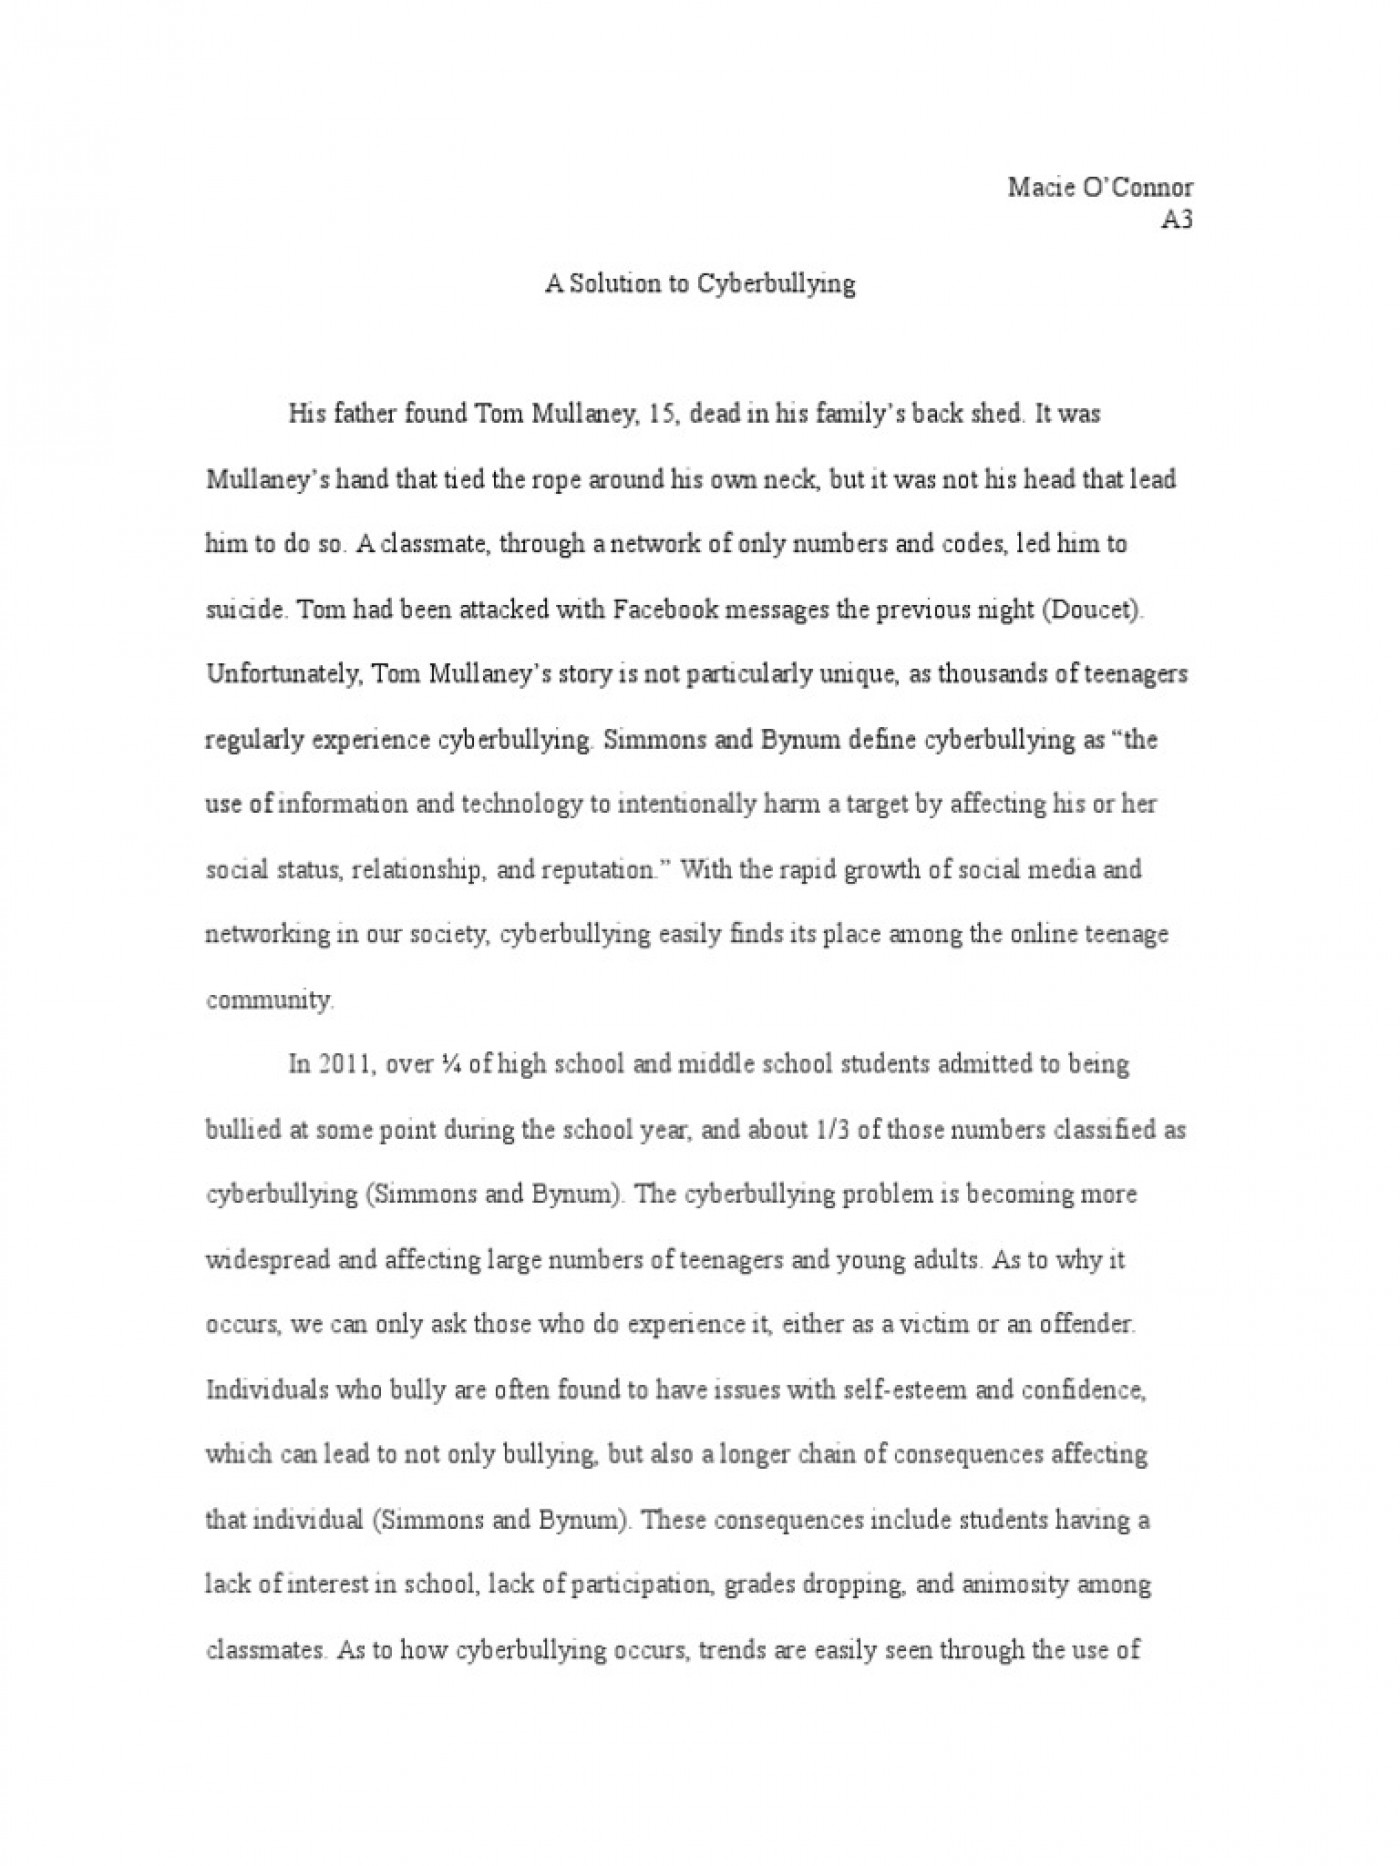 008 Essay Example Bullying Problem Solution Cyberbullying Communication How To Stop In Schools High School Avoid At Deal With Ways Prevent Awful Persuasive Ideas Argumentative Thesis 1400